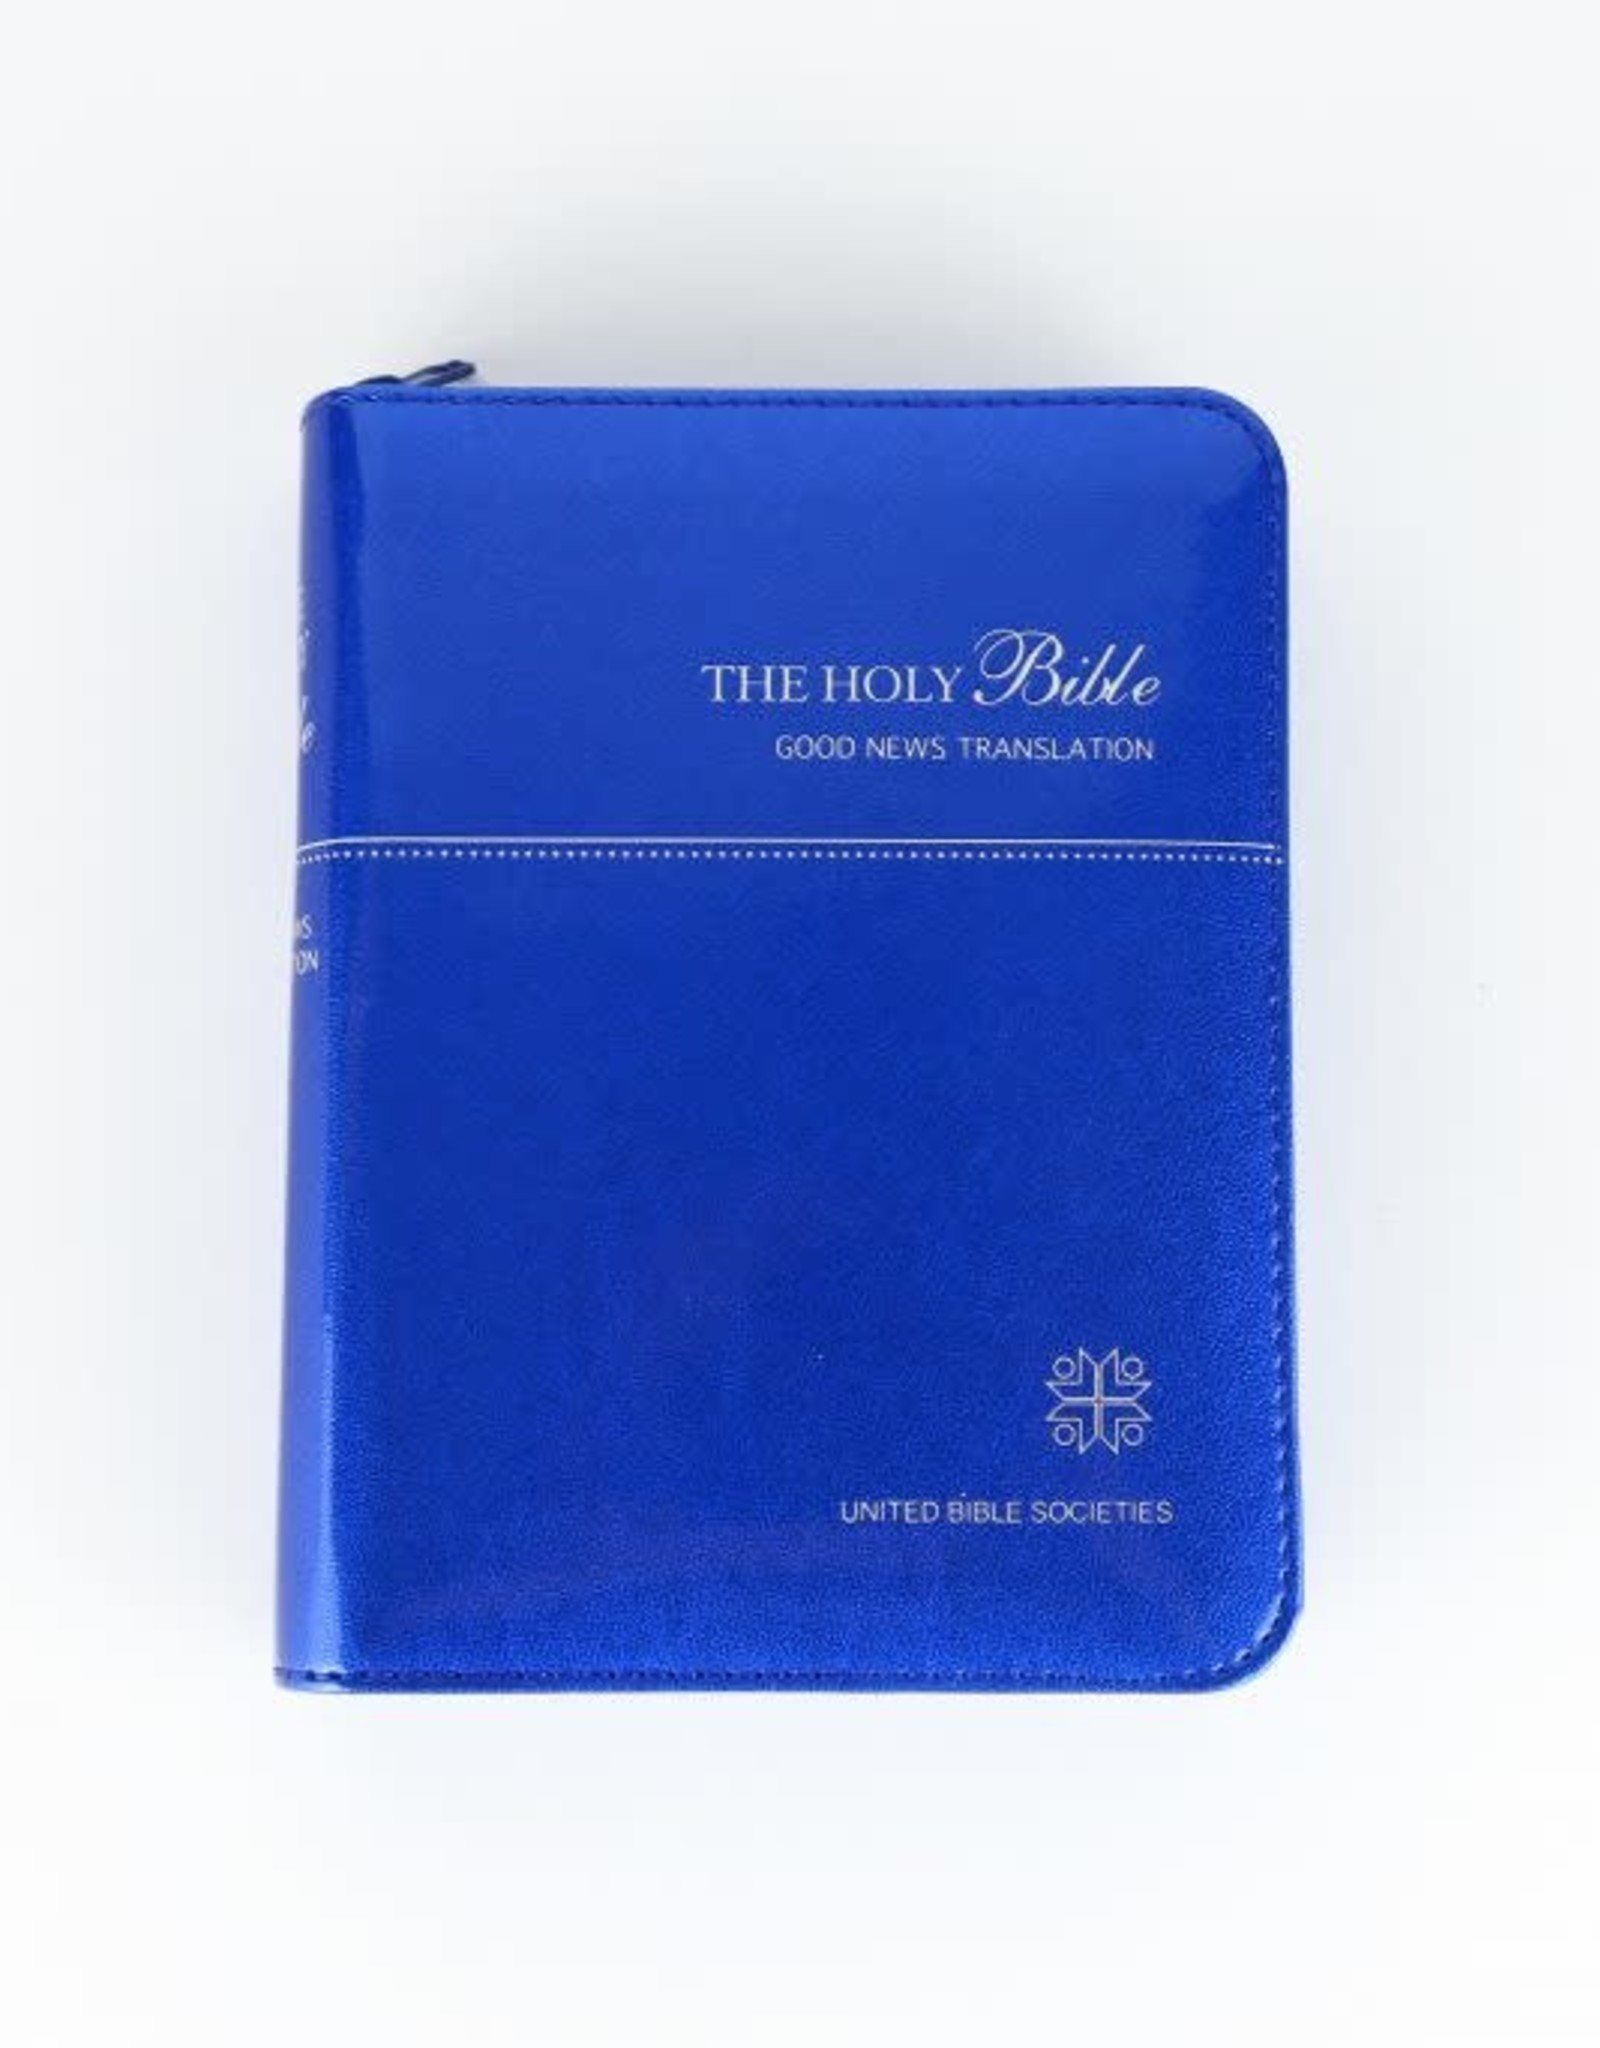 Société Biblique / Bible Society Holy Bible Good News Translation bleu (anglais)